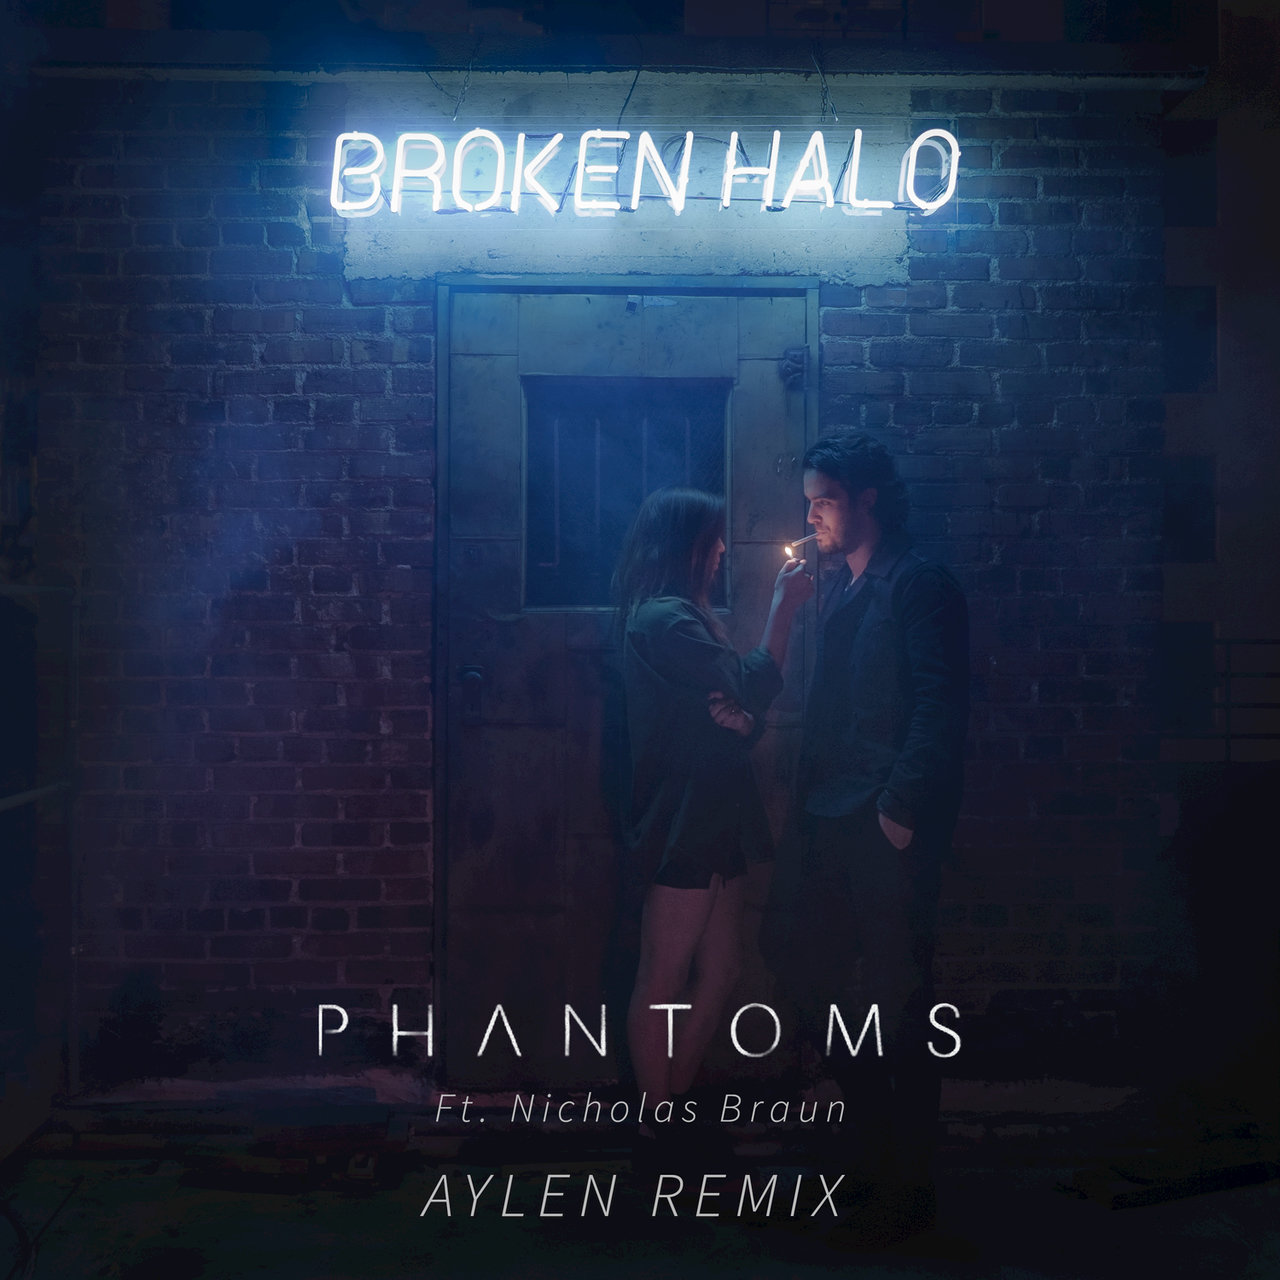 Broken Halo (Aylen Remix)